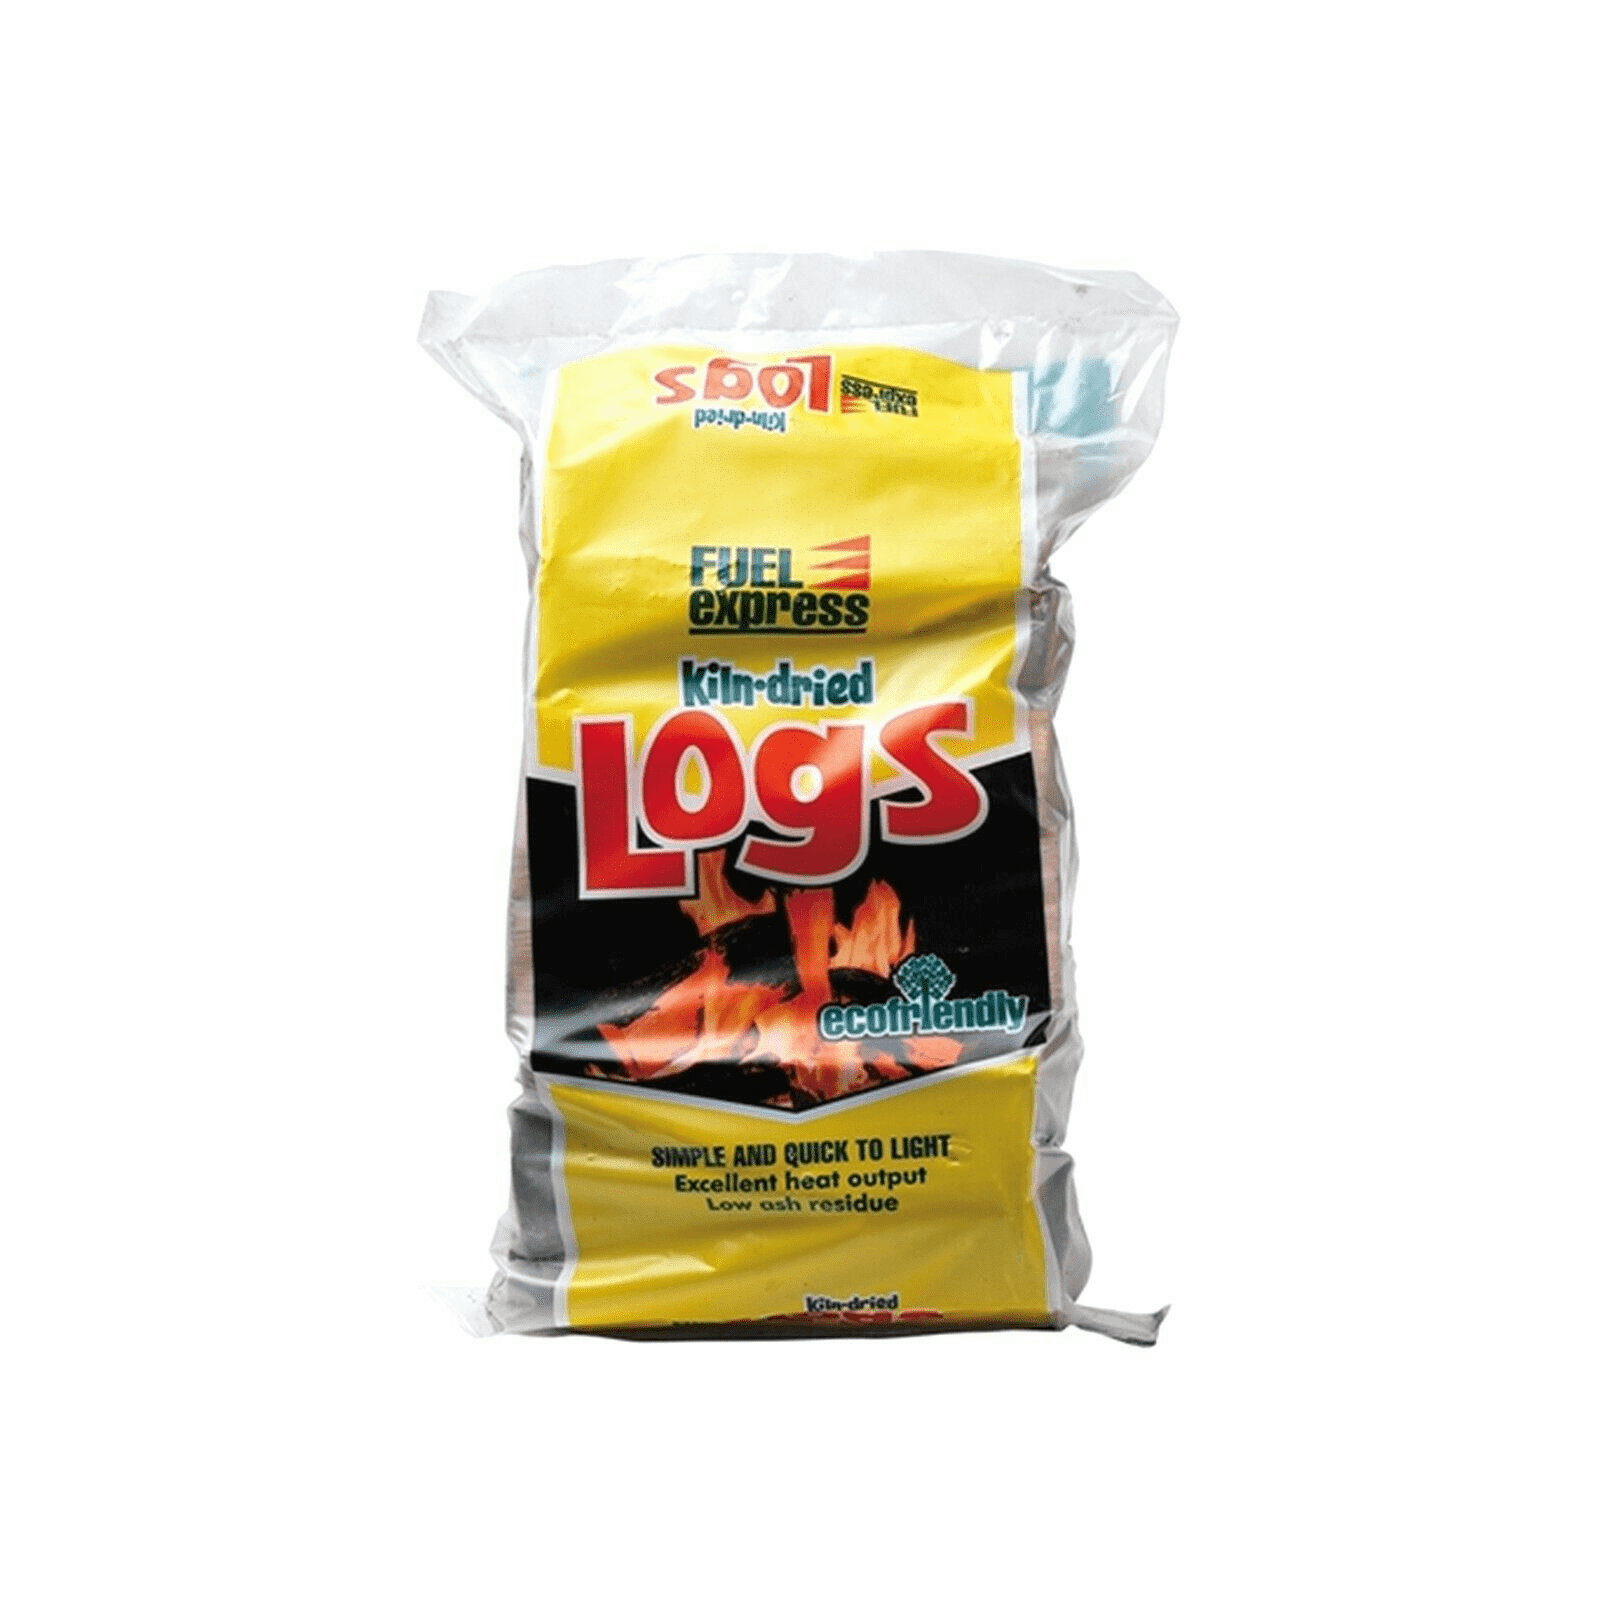 Fuel Express Kiln Dried Logs Handy Bag